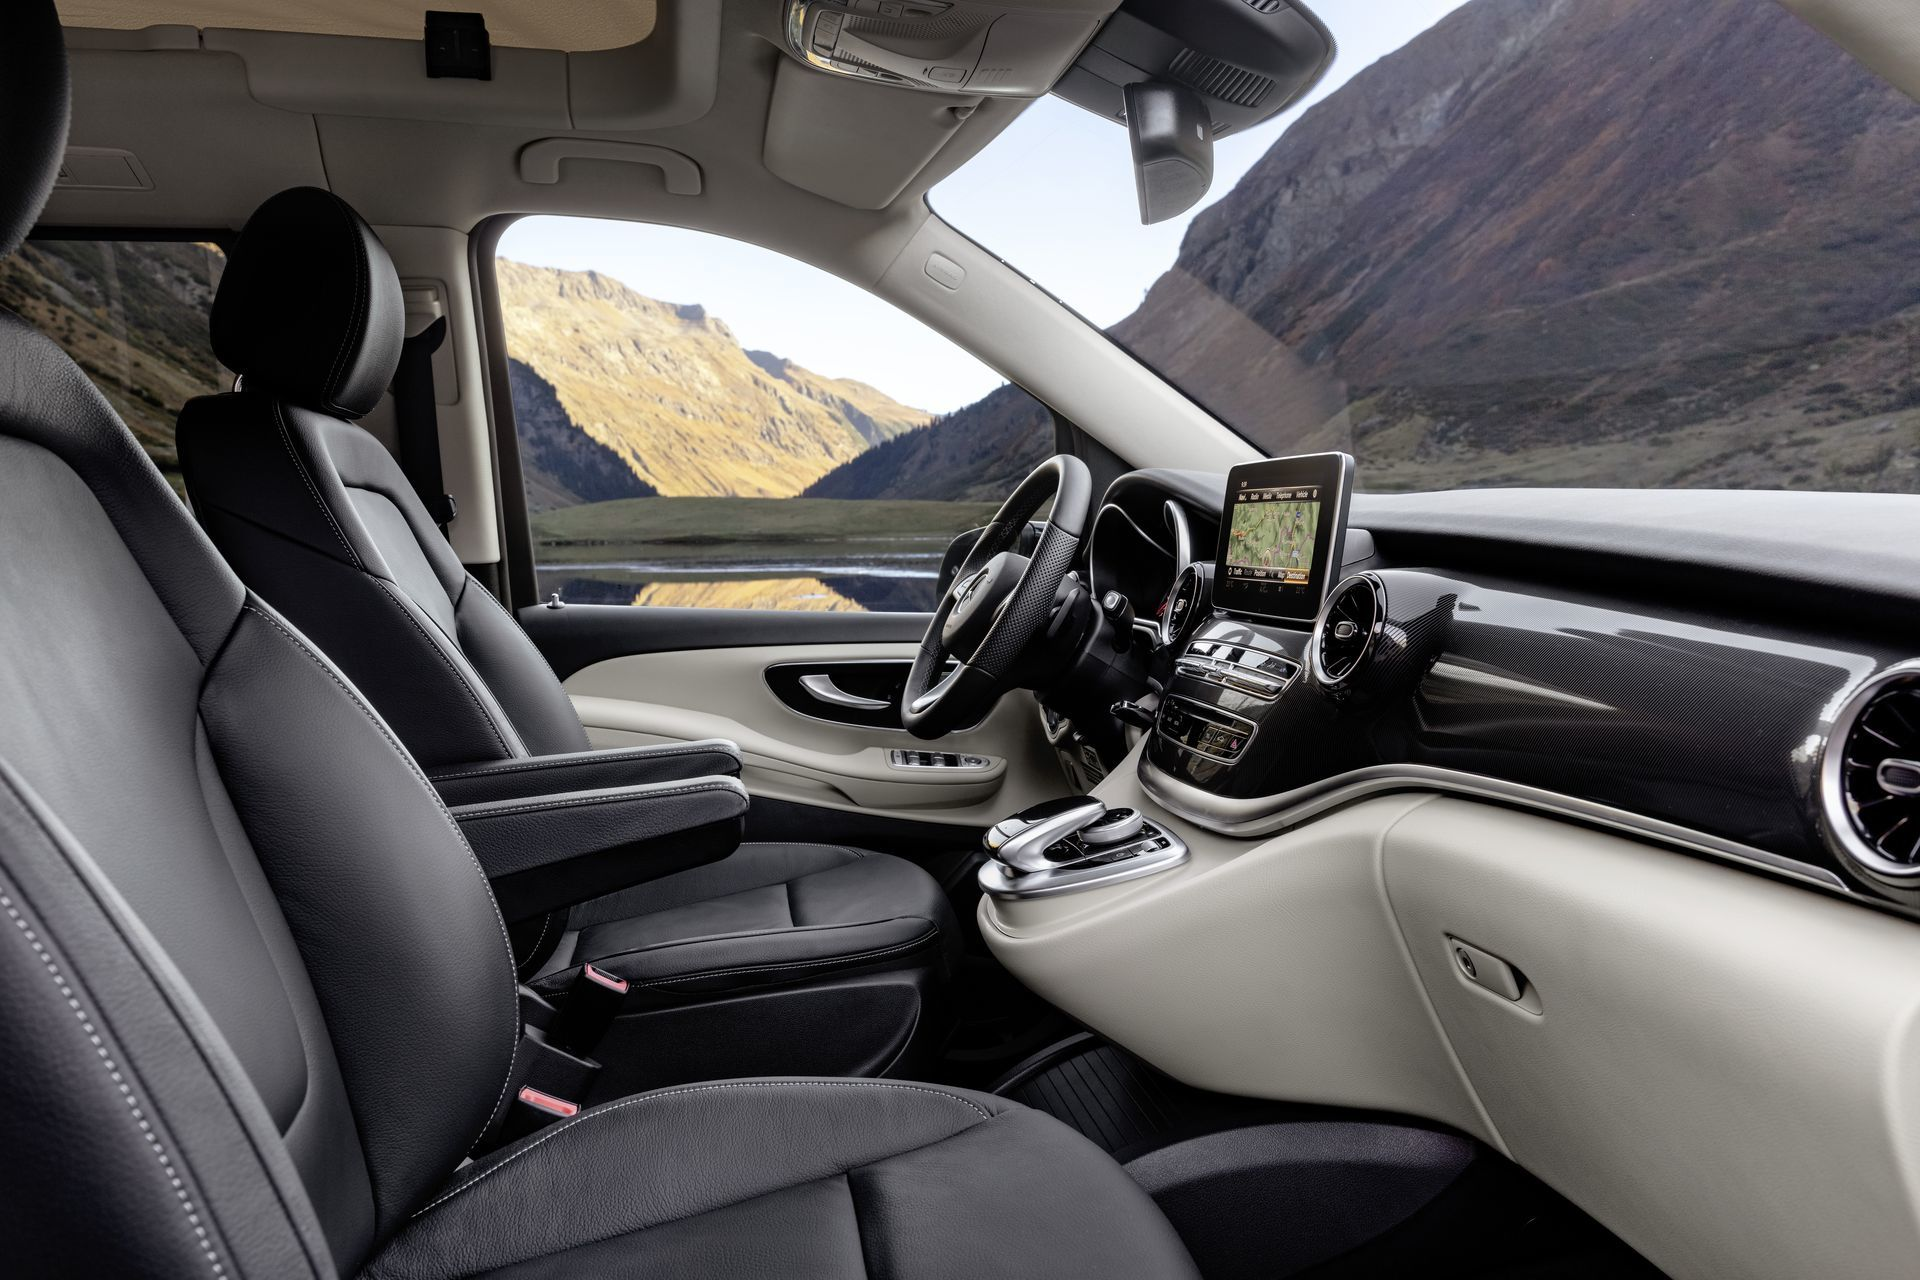 Mercedes Marco Polo 2019 Interior 1